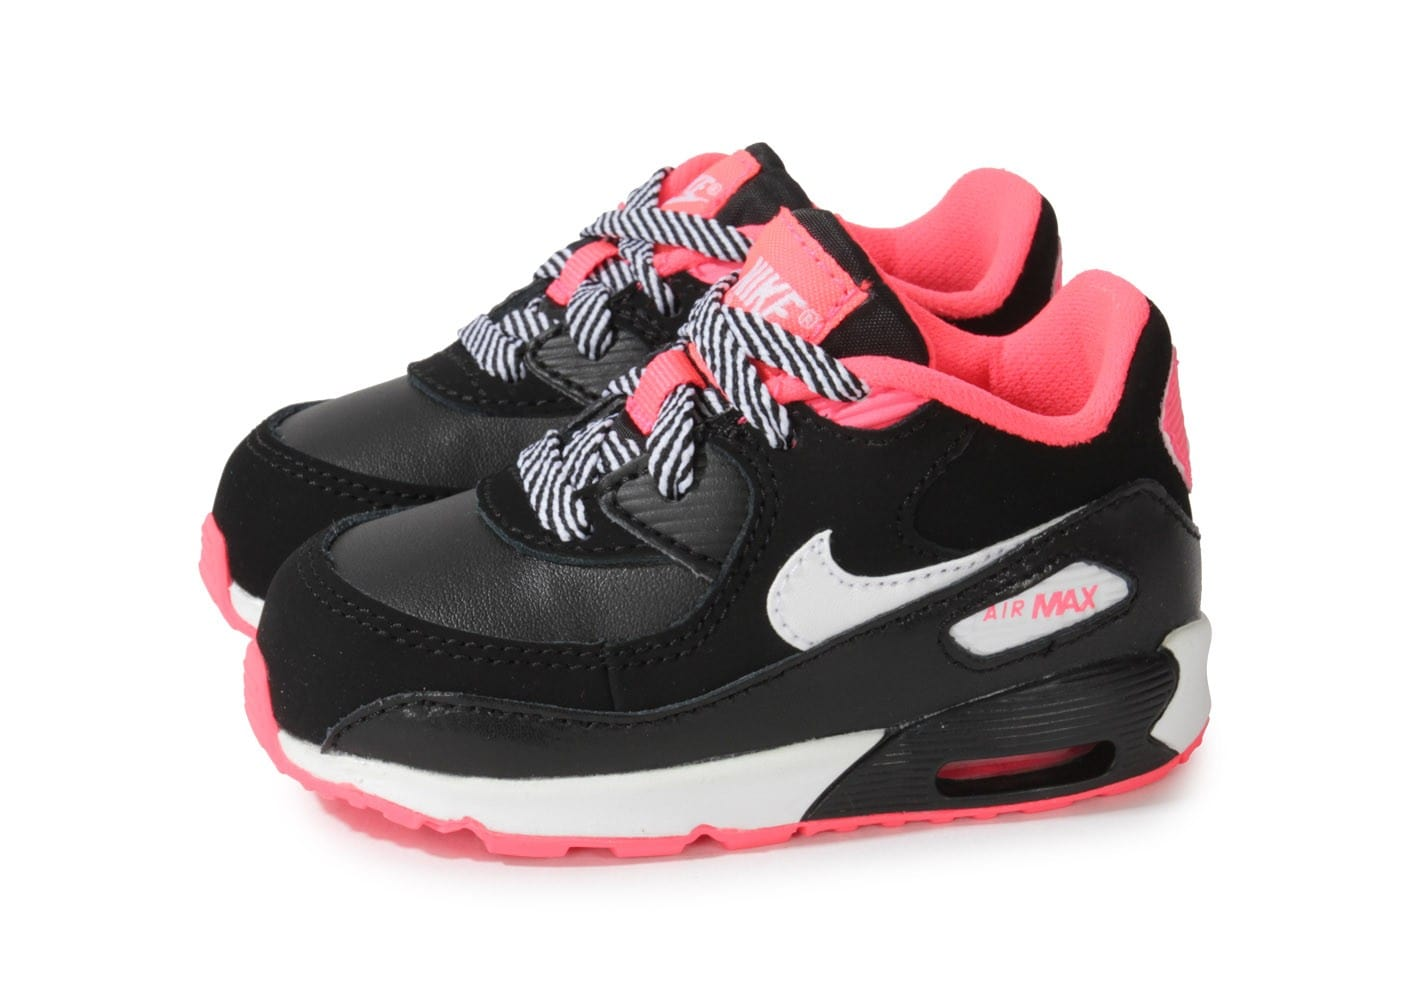 nike air max 90 b b noire et rose chaussures chaussures chausport. Black Bedroom Furniture Sets. Home Design Ideas